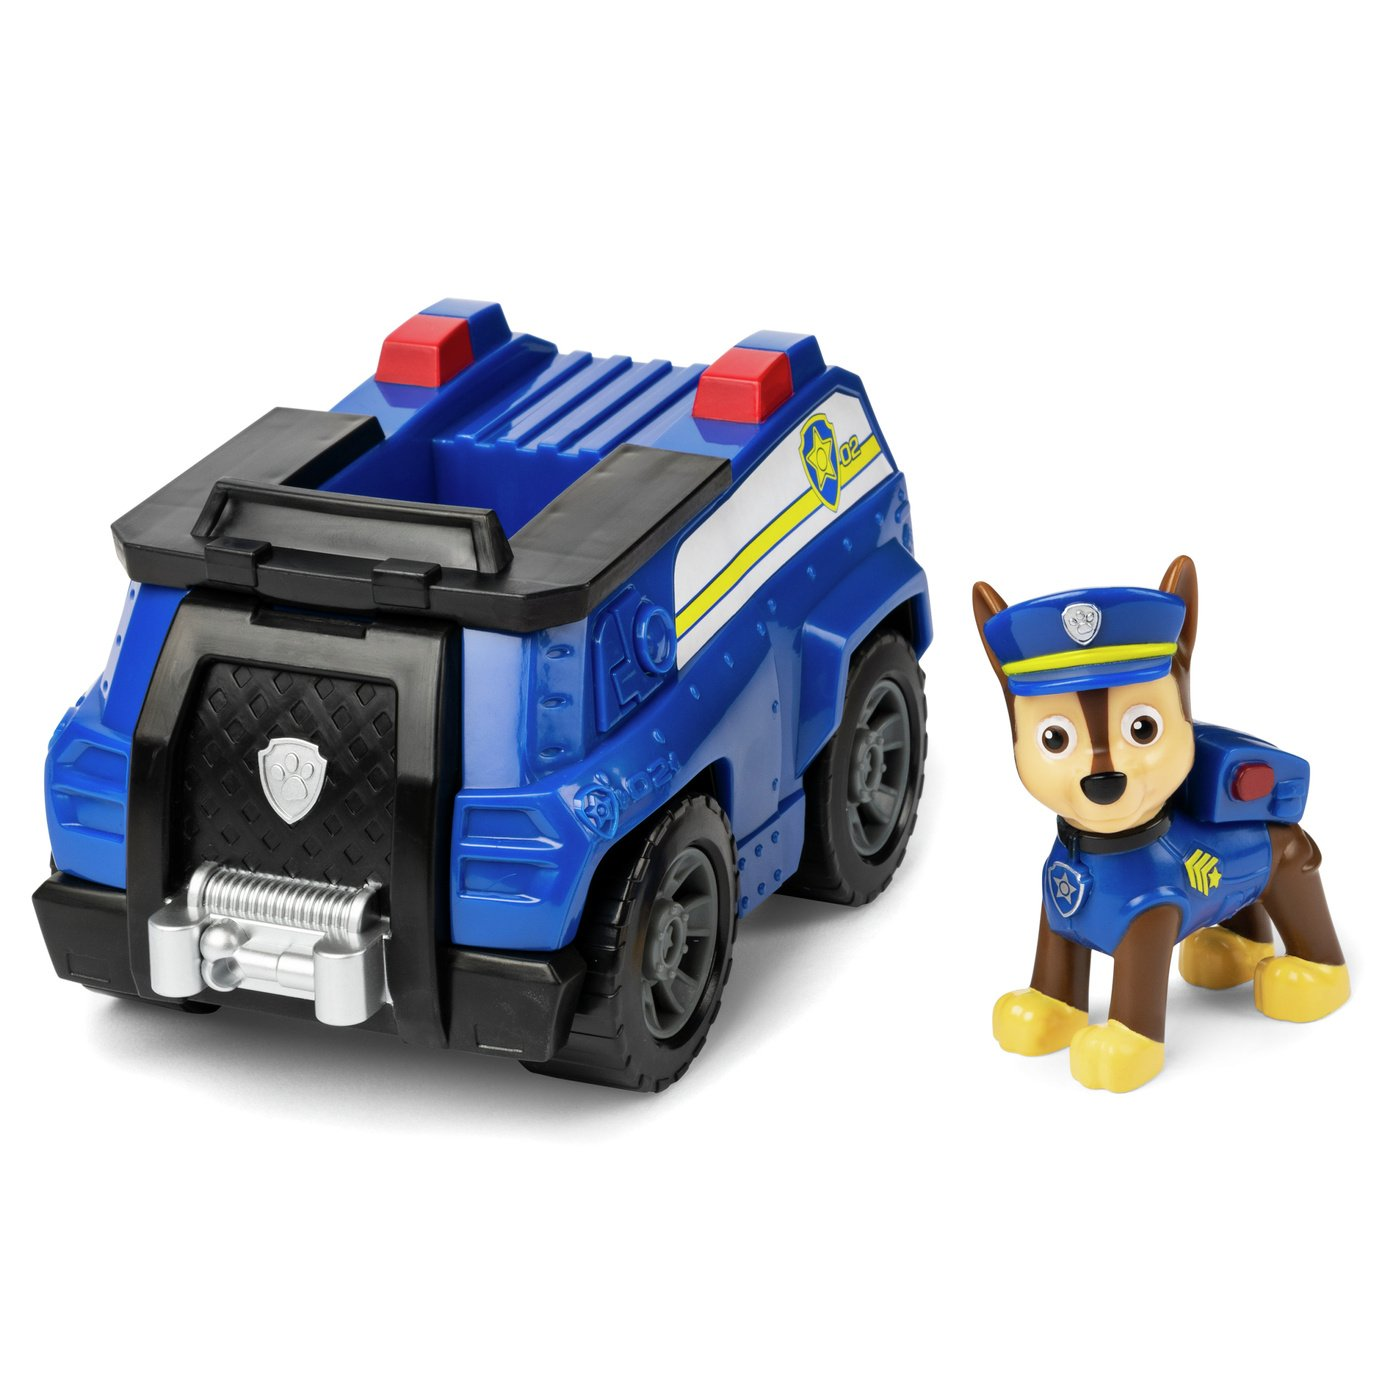 PAW Patrol Chase's Vehicles from Paw patrol